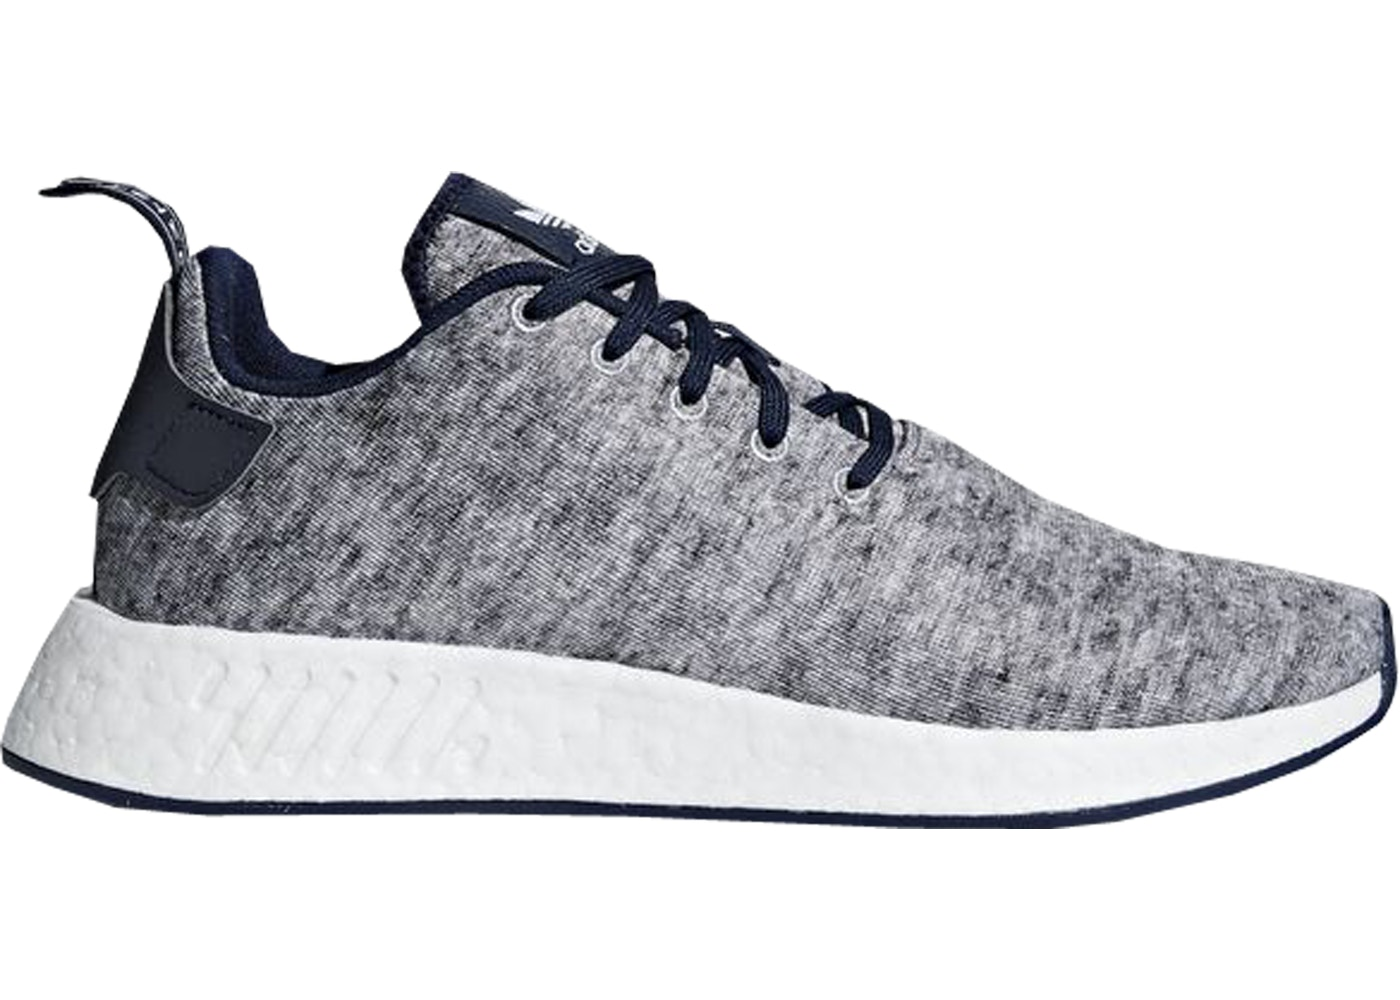 591a4e3ca adidas NMD R2 United Arrows   Sons - DA8834